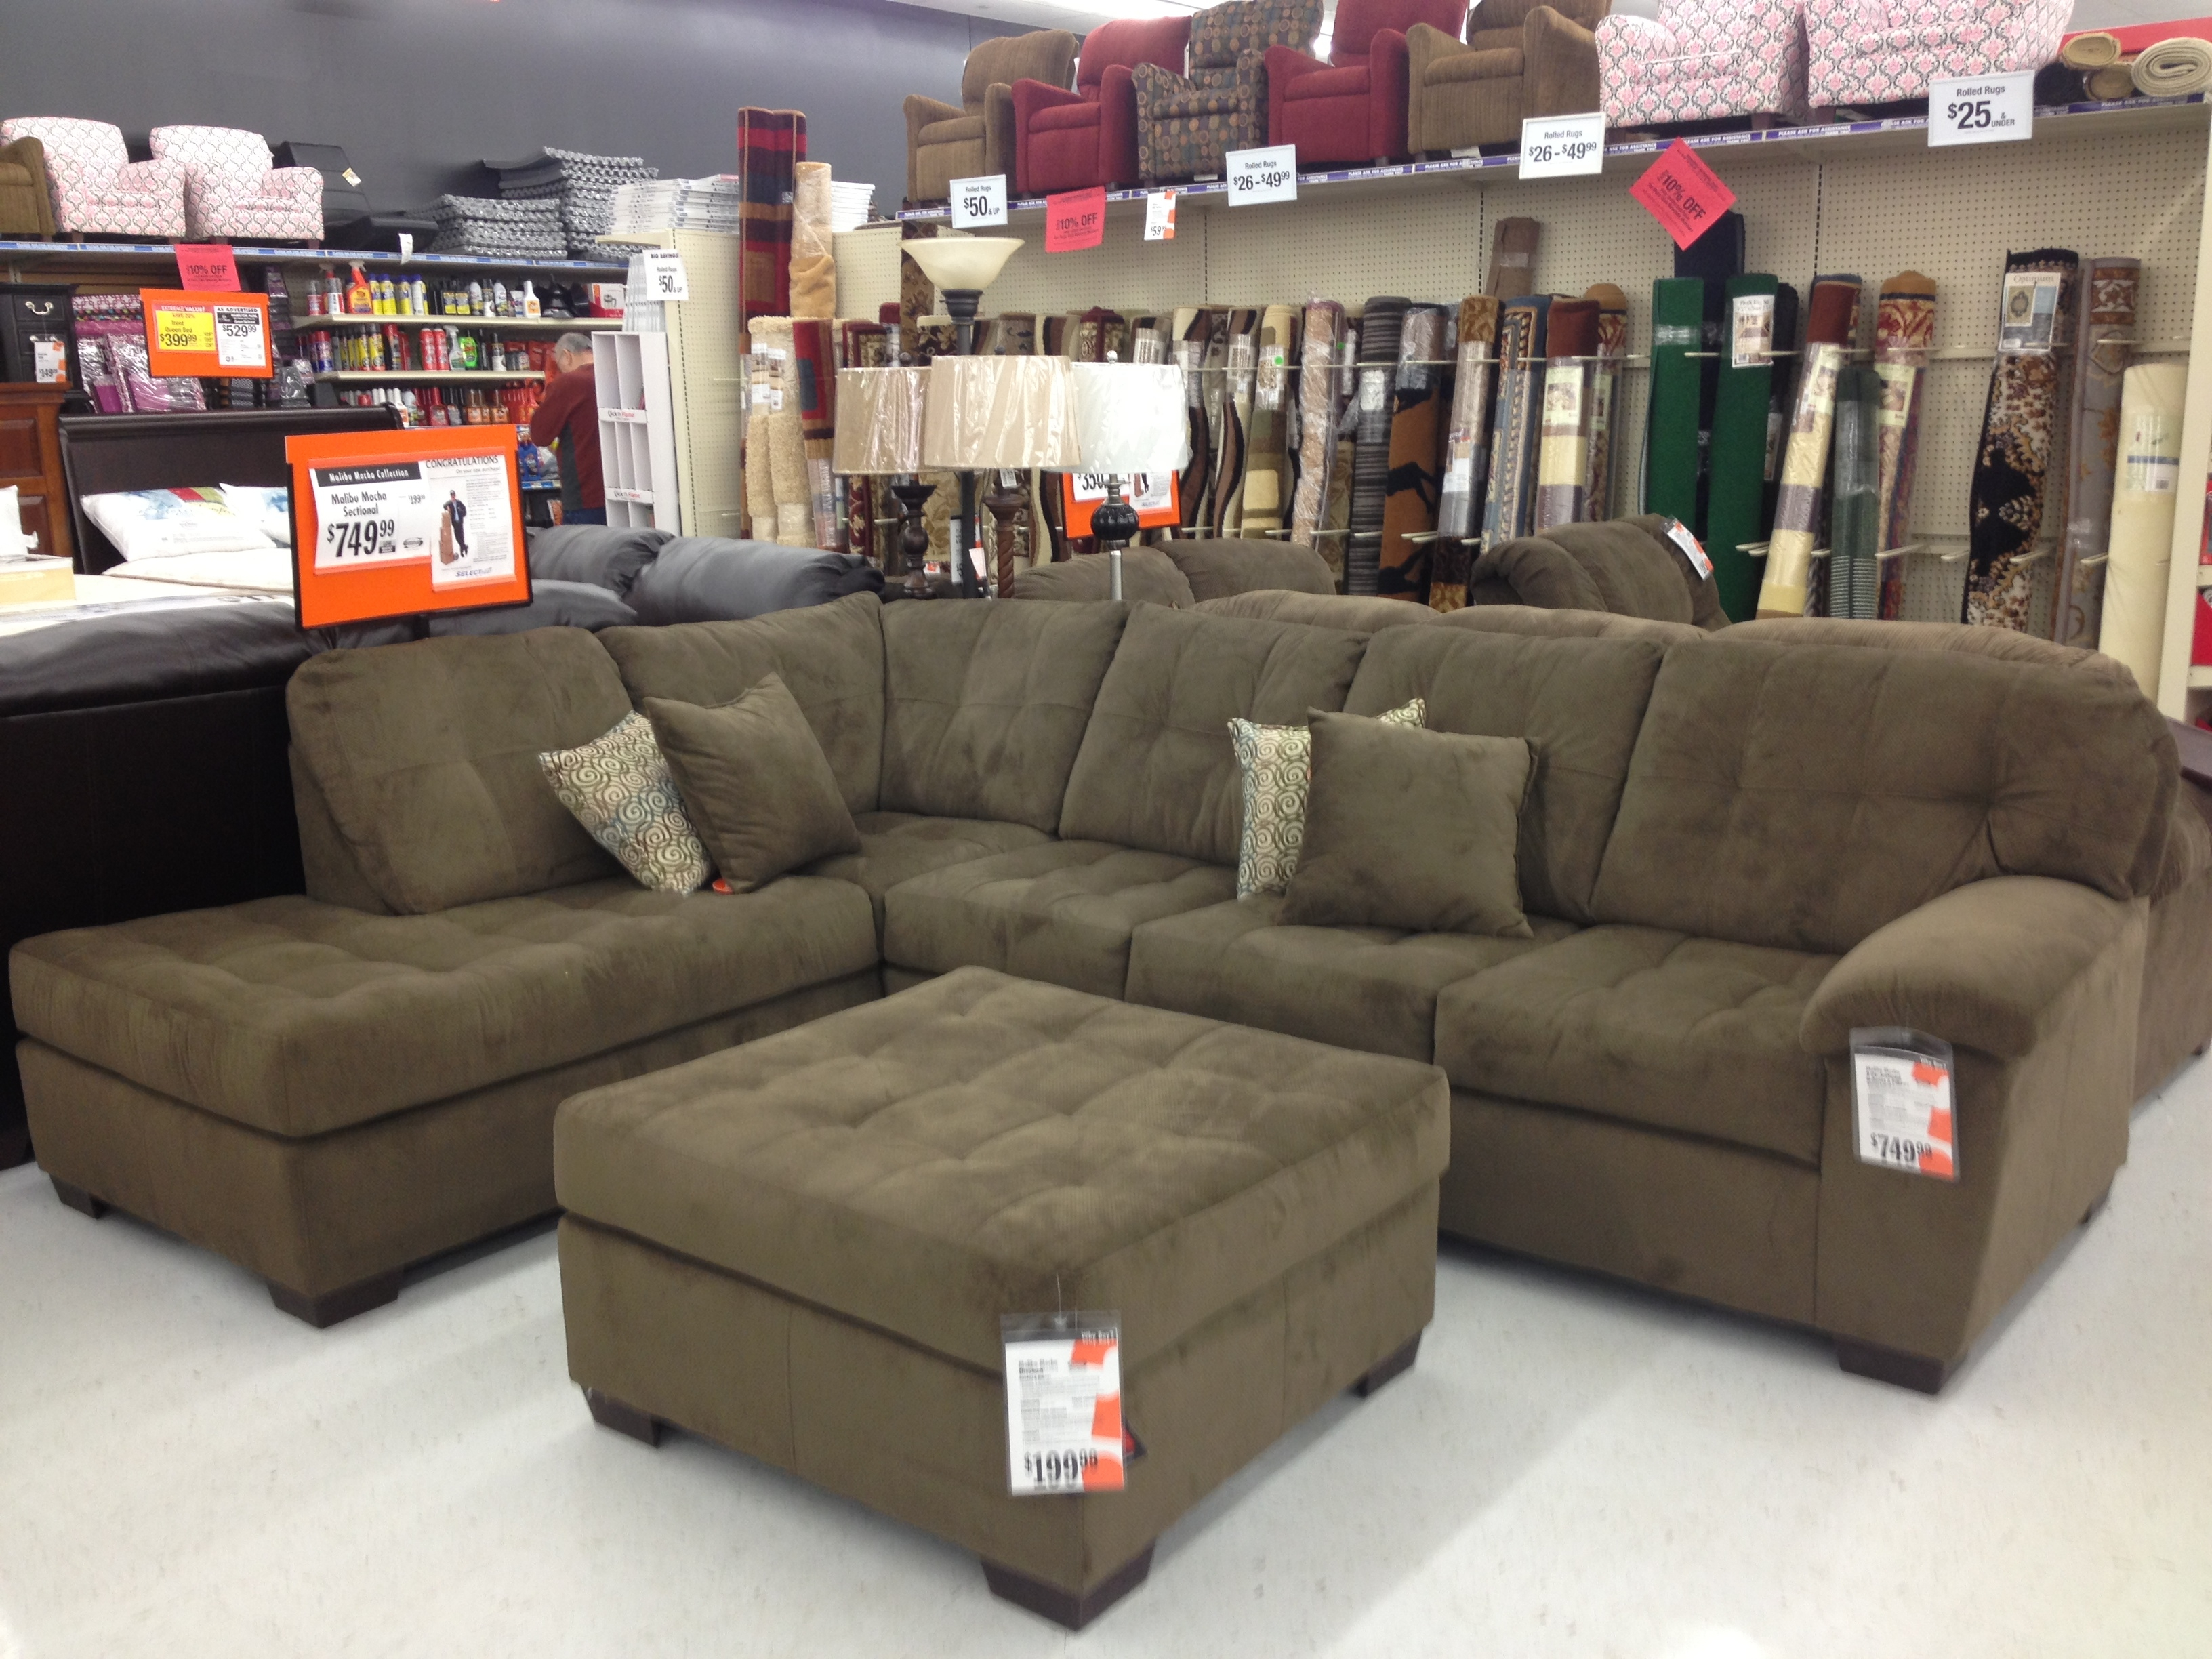 12 collection of big lots sofas. Black Bedroom Furniture Sets. Home Design Ideas